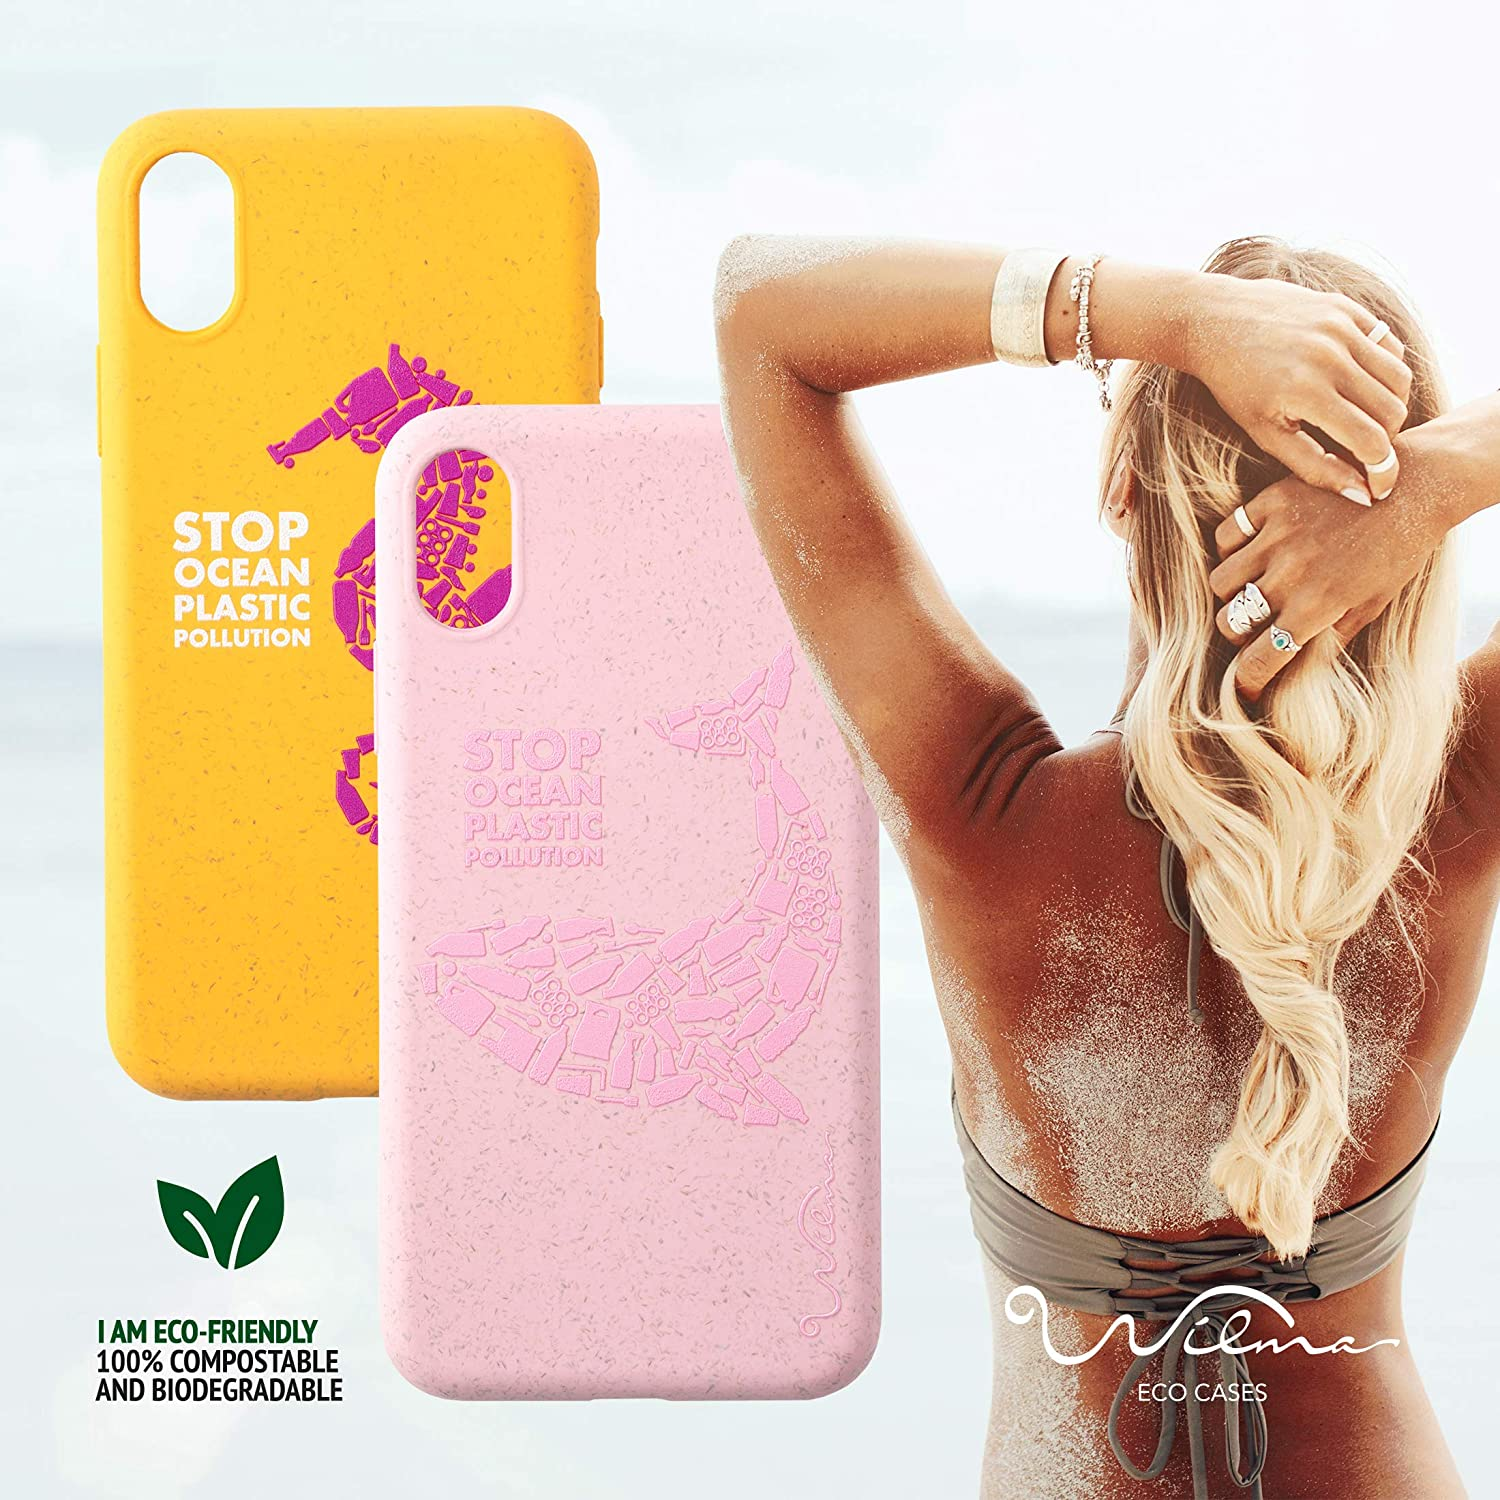 Fully Protective Phone Cover Plastic-Free Matte Manta Stop Ocean Plastic Pollution Non-Toxic Zero Waste Wilma Eco-Friendly Biodegradable Compatible with iPhone 11 Case